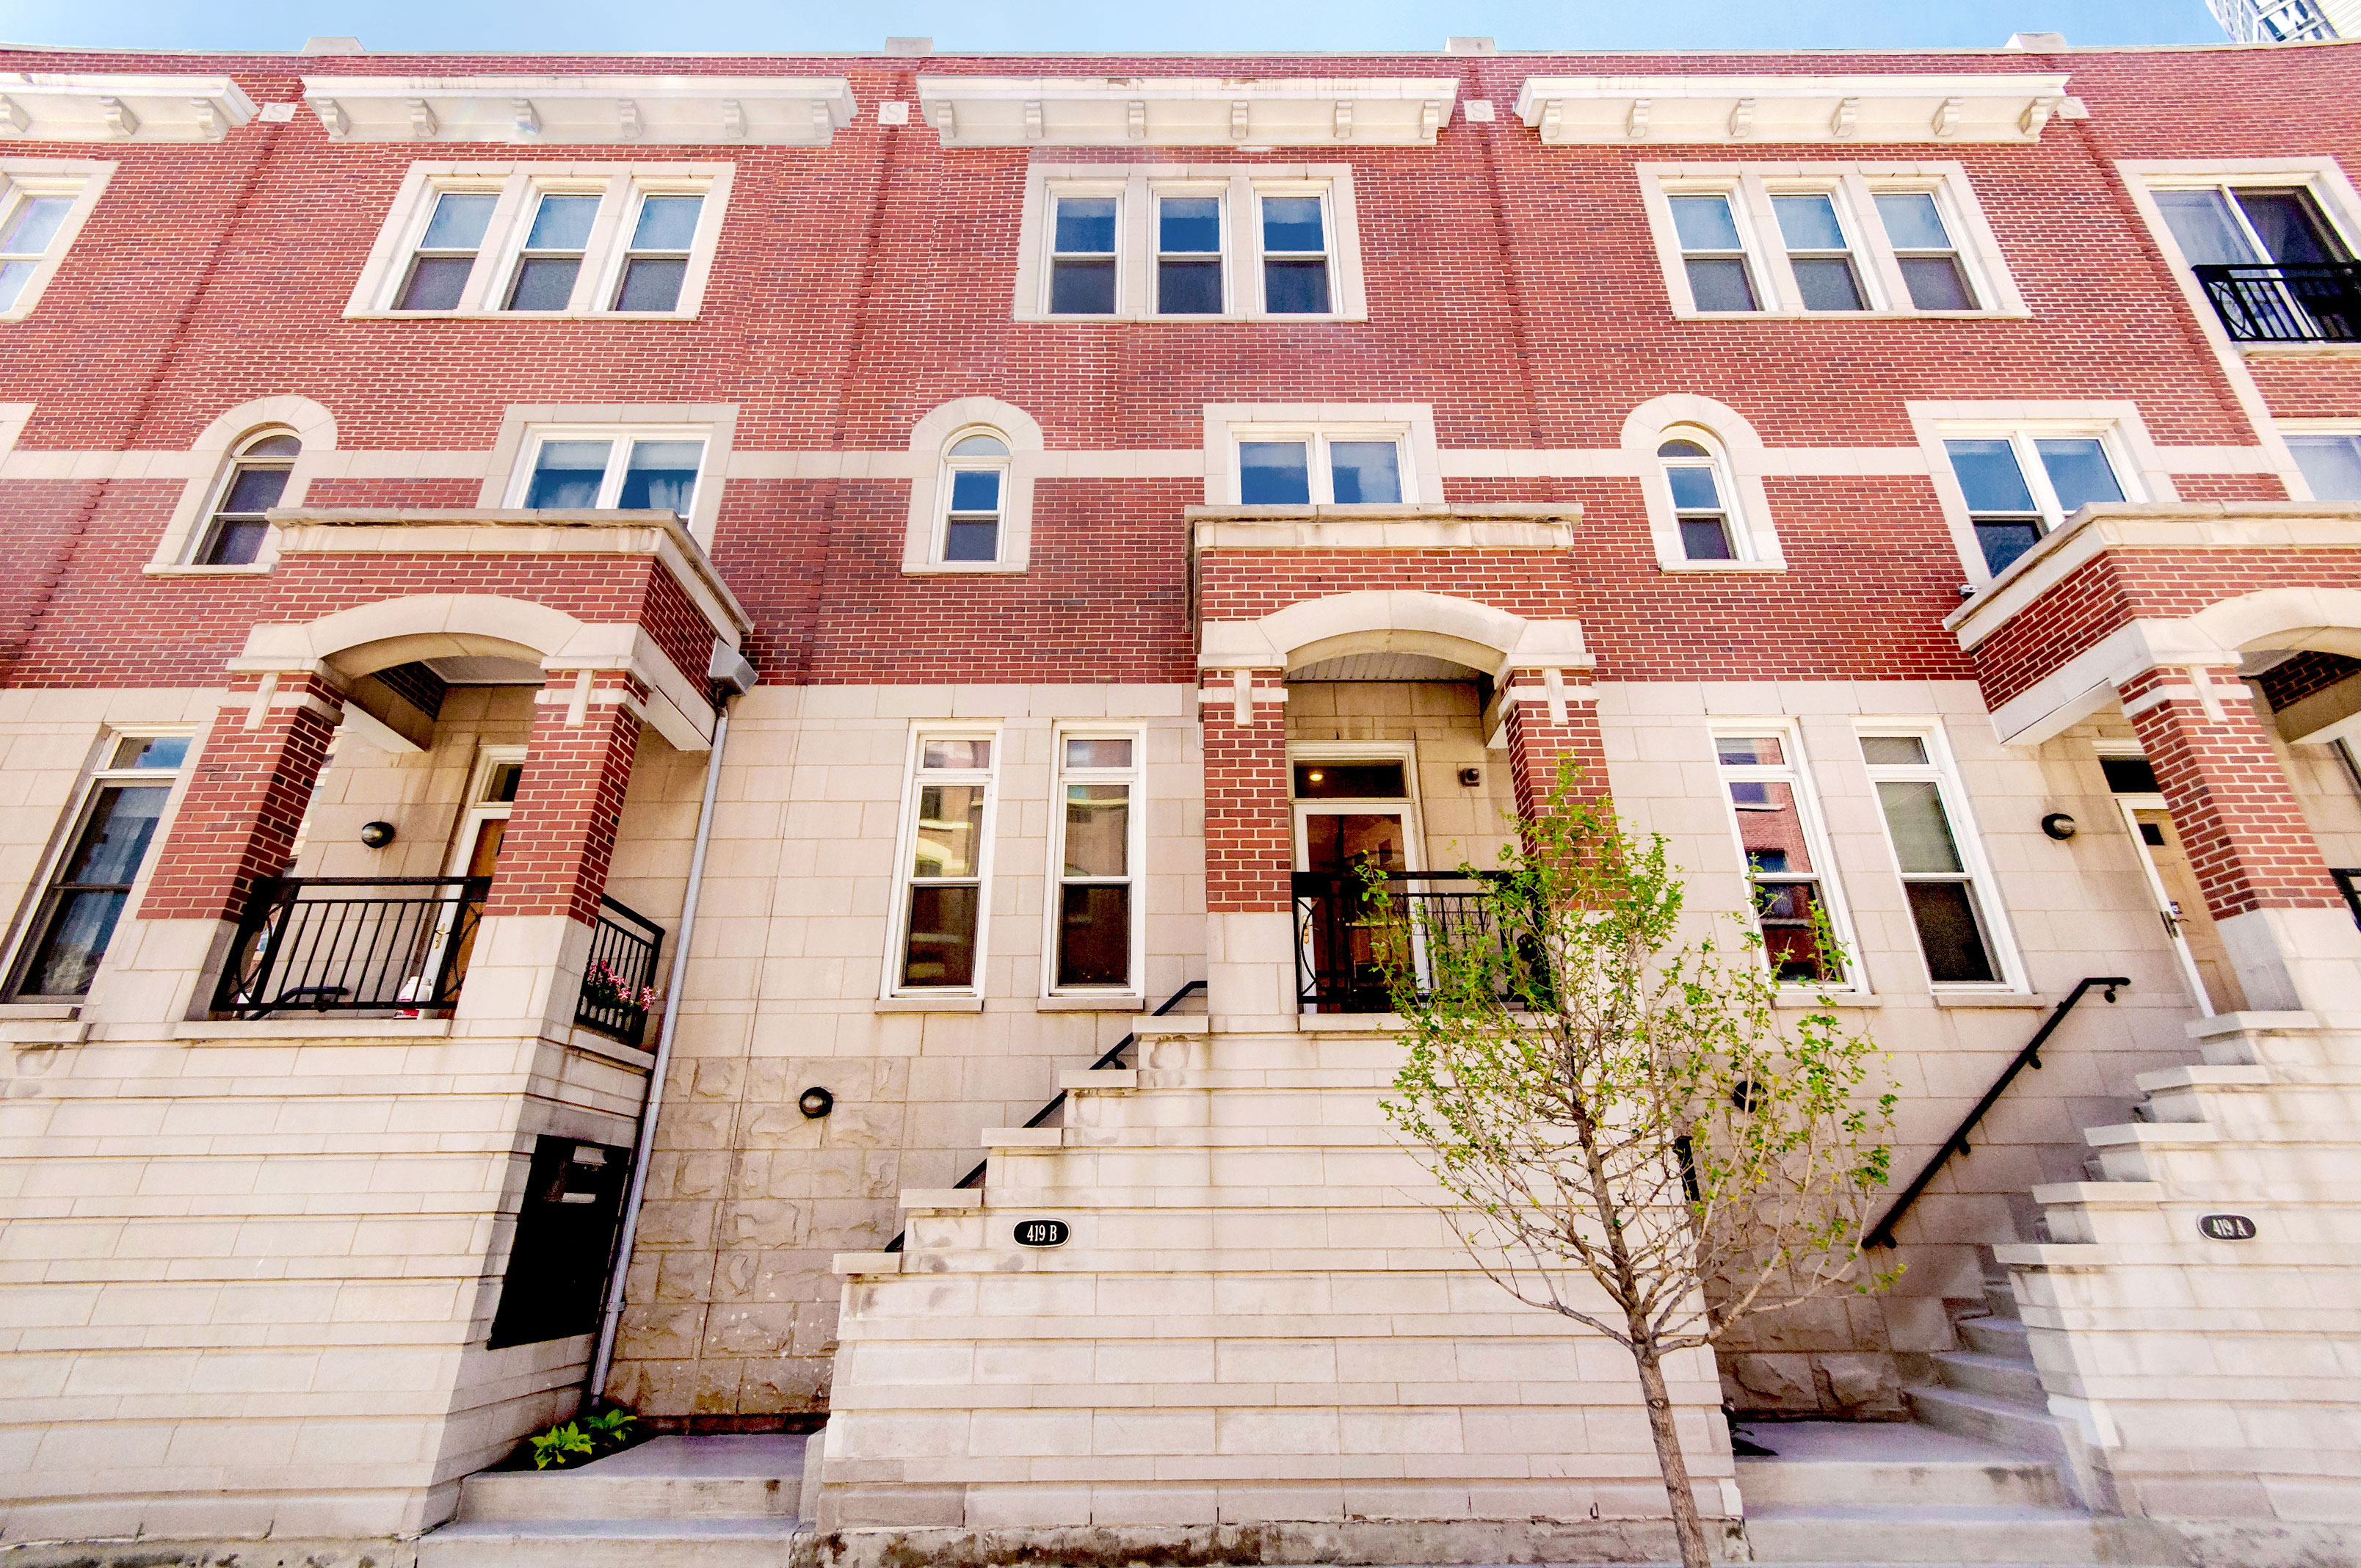 Townhouse for Sale at Contemporary Sexton Rowhouse 419 W Grand Avenue #B Near North Side, Chicago, Illinois 60654 United States